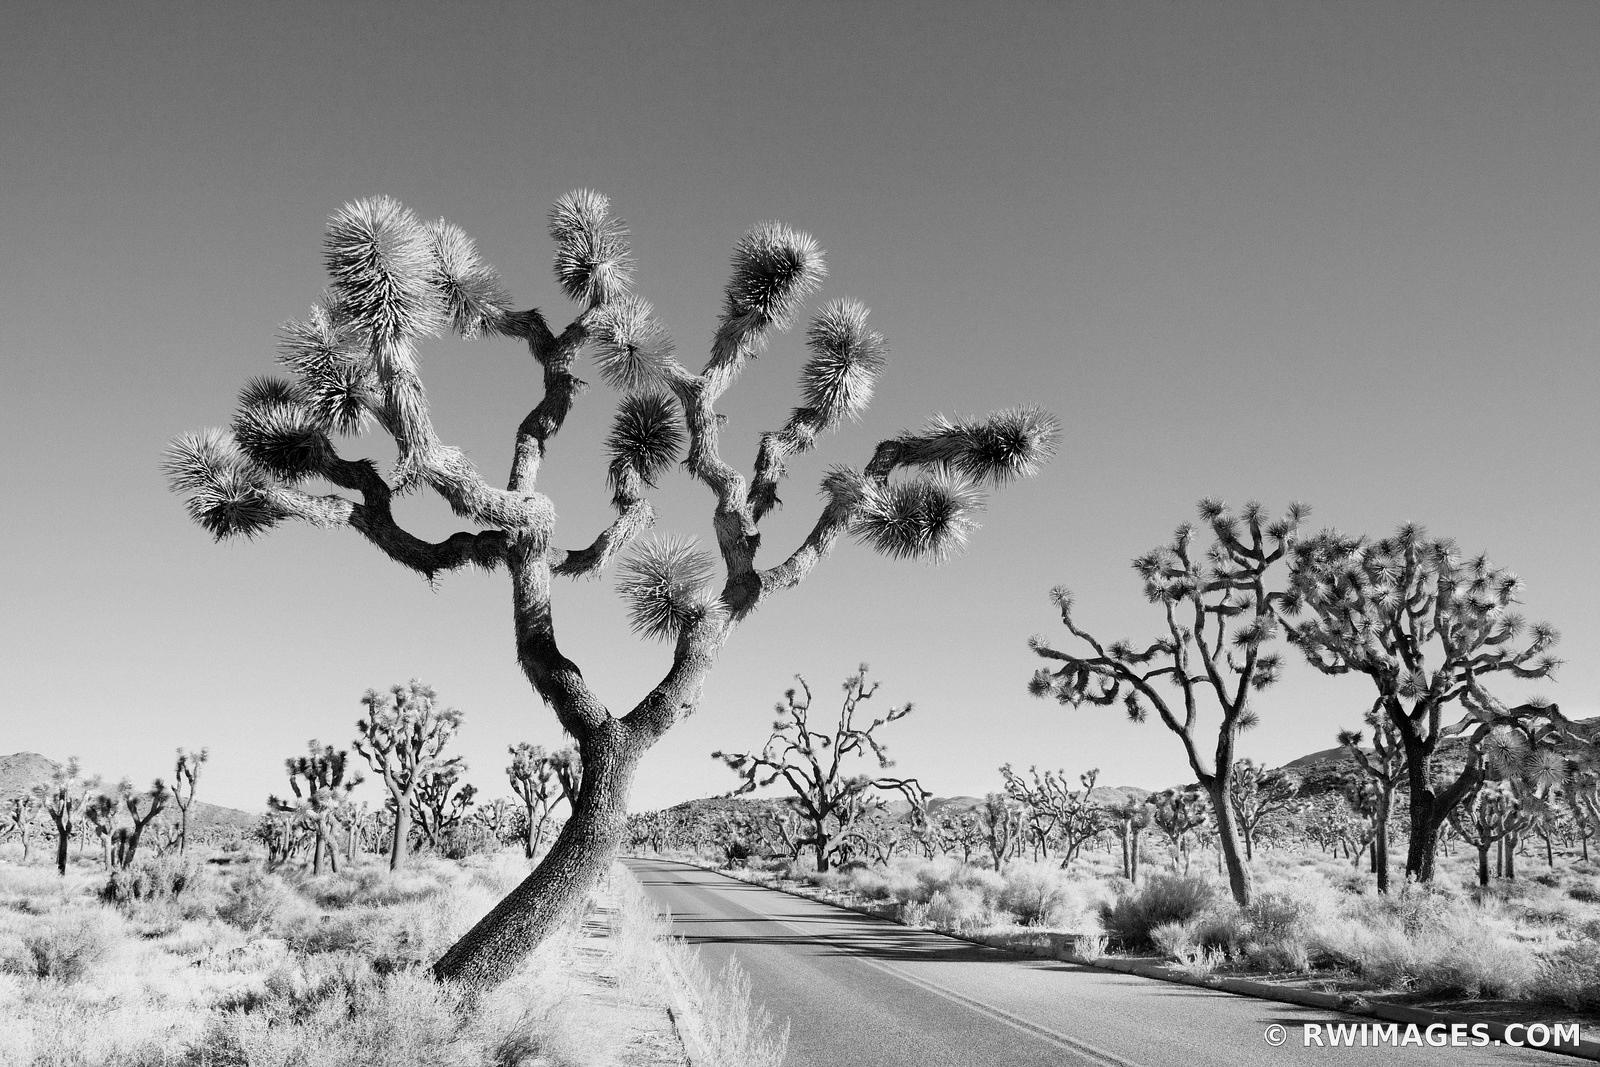 JOSHUA TREE NATIONAL PARK CALIFORNIA BLACK AND WHITE